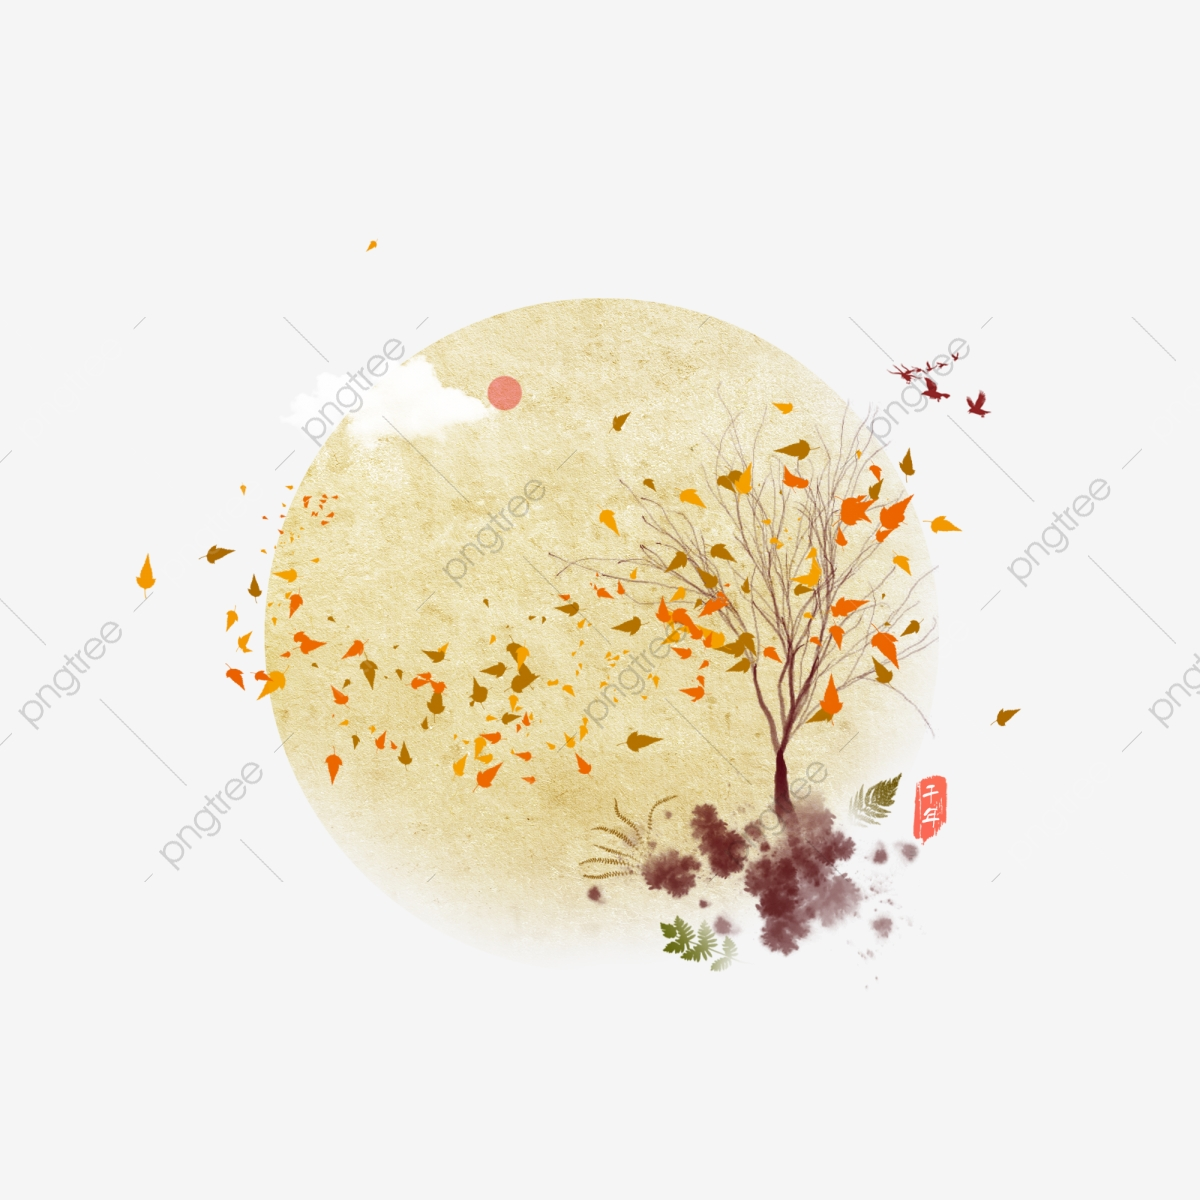 hight resolution of commercial use resource upgrade to premium plan and get license authorization upgrade now autumn tree leaves beautiful romantic illustration background